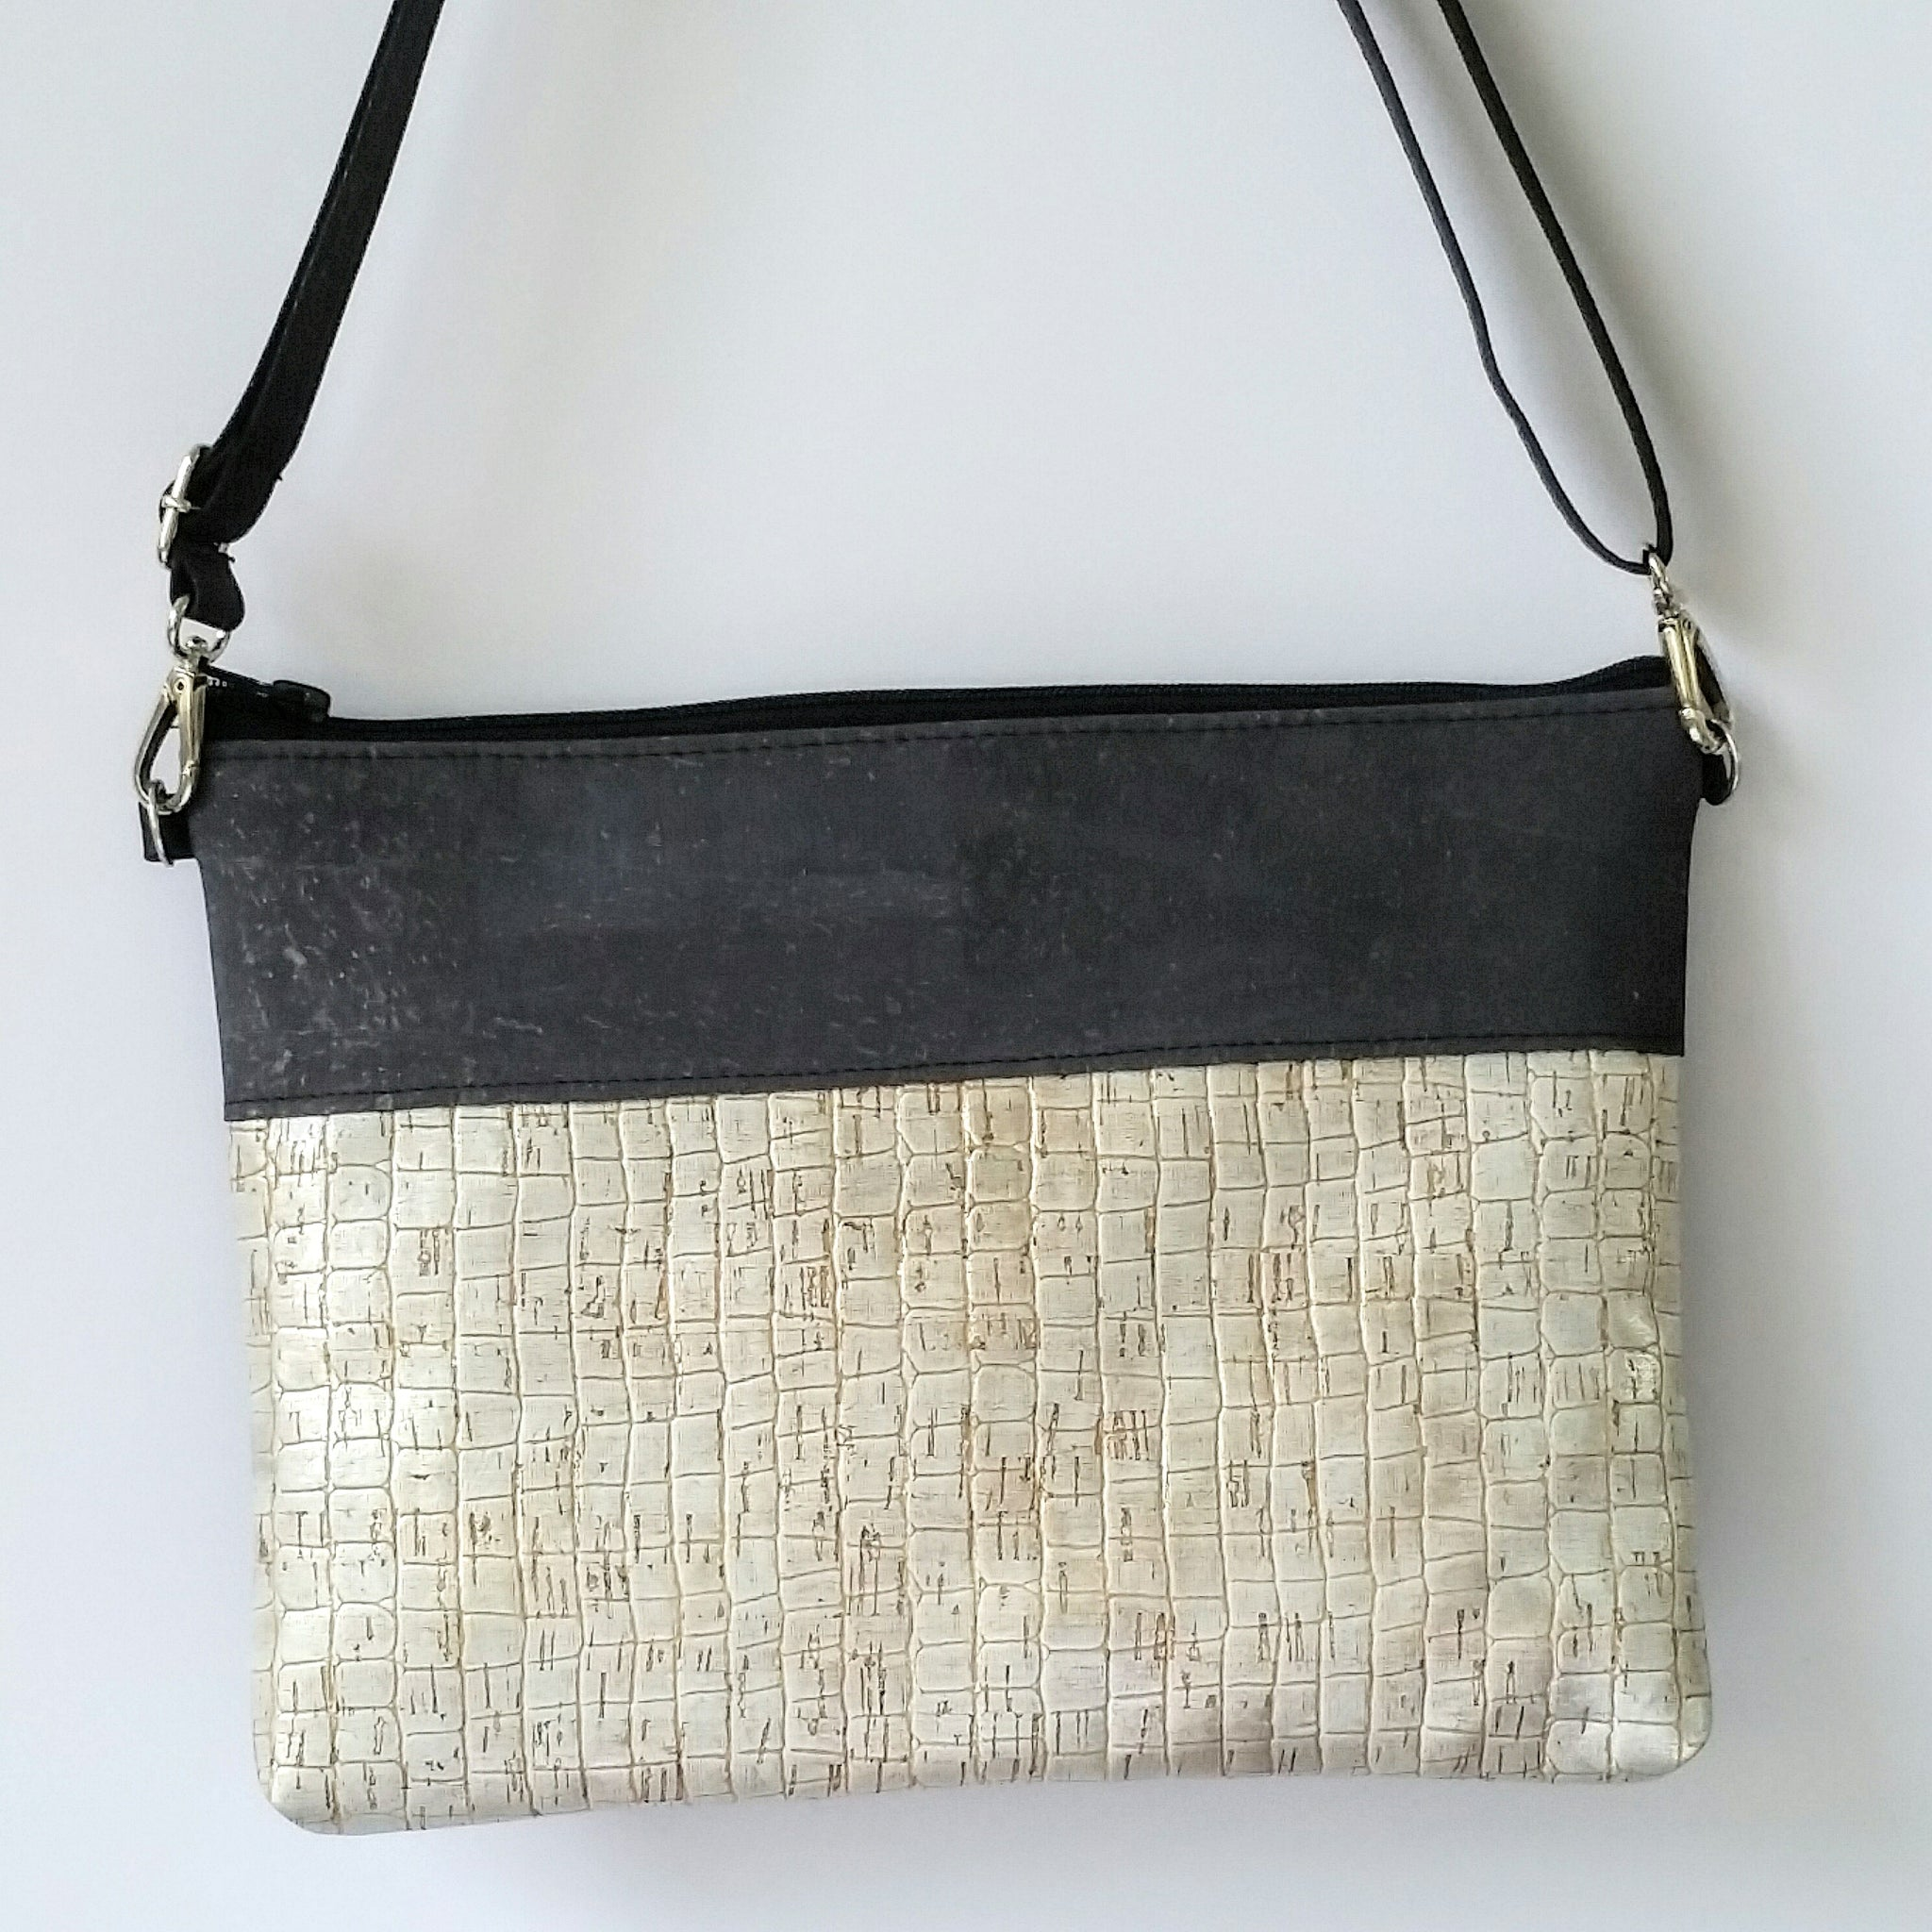 Cork Crossbody Bag/Clutch - Silver/Charcoal Grey